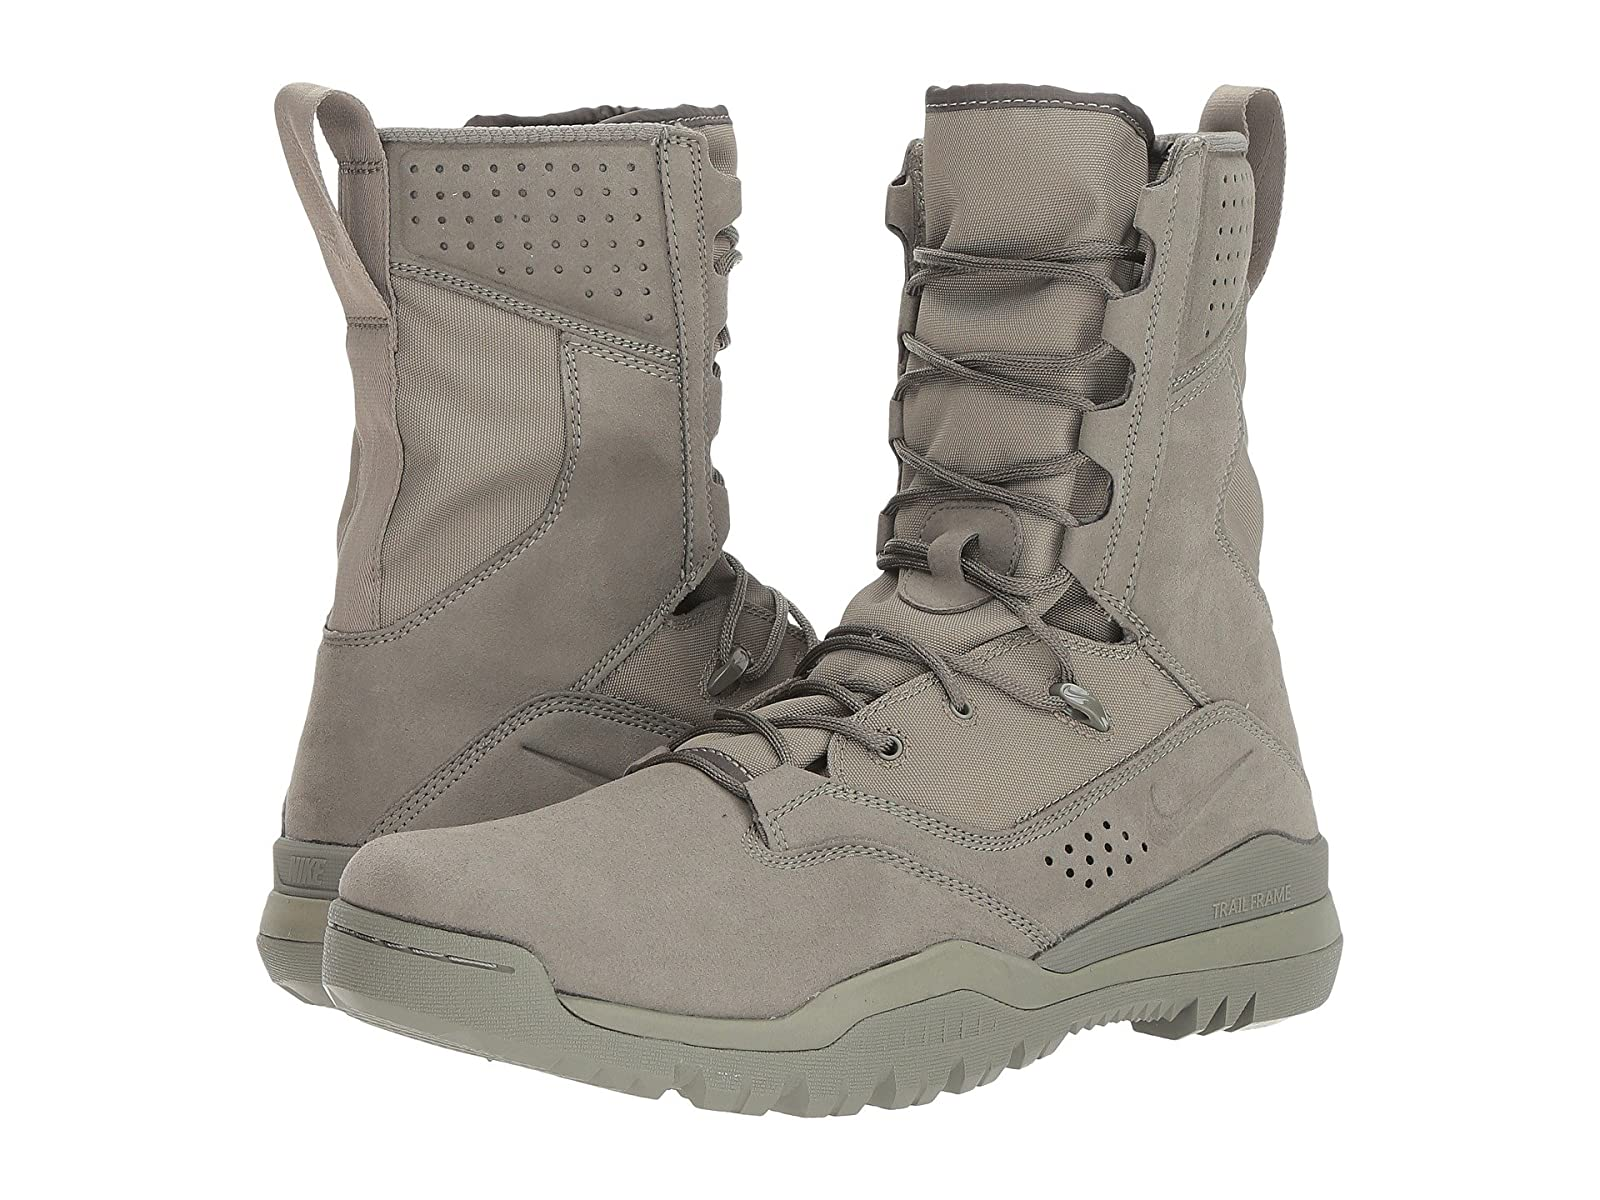 Nike SFB Field 2 8''Economical and quality shoes